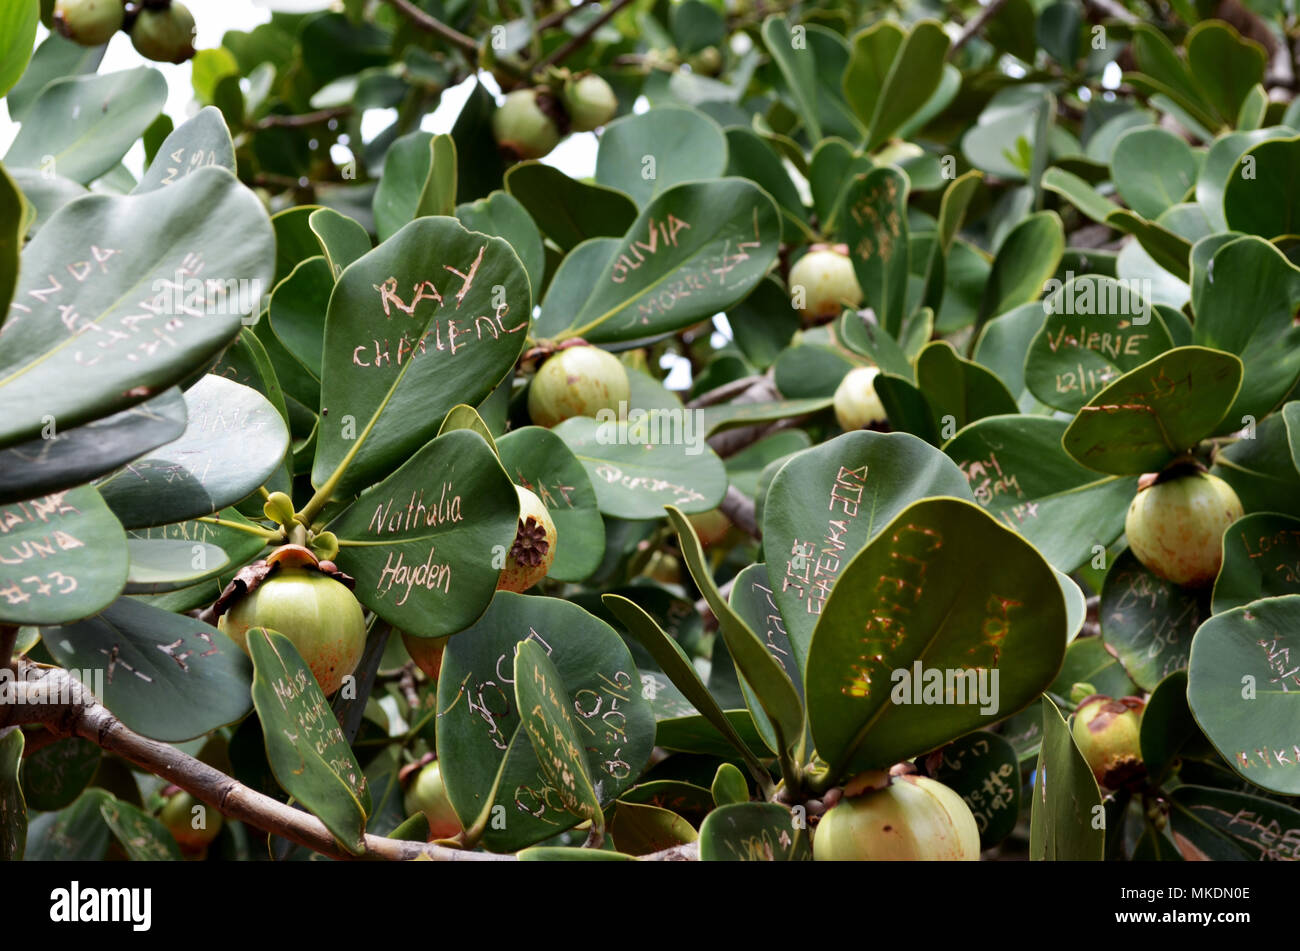 Names written on leaves of fruit tree - Stock Image